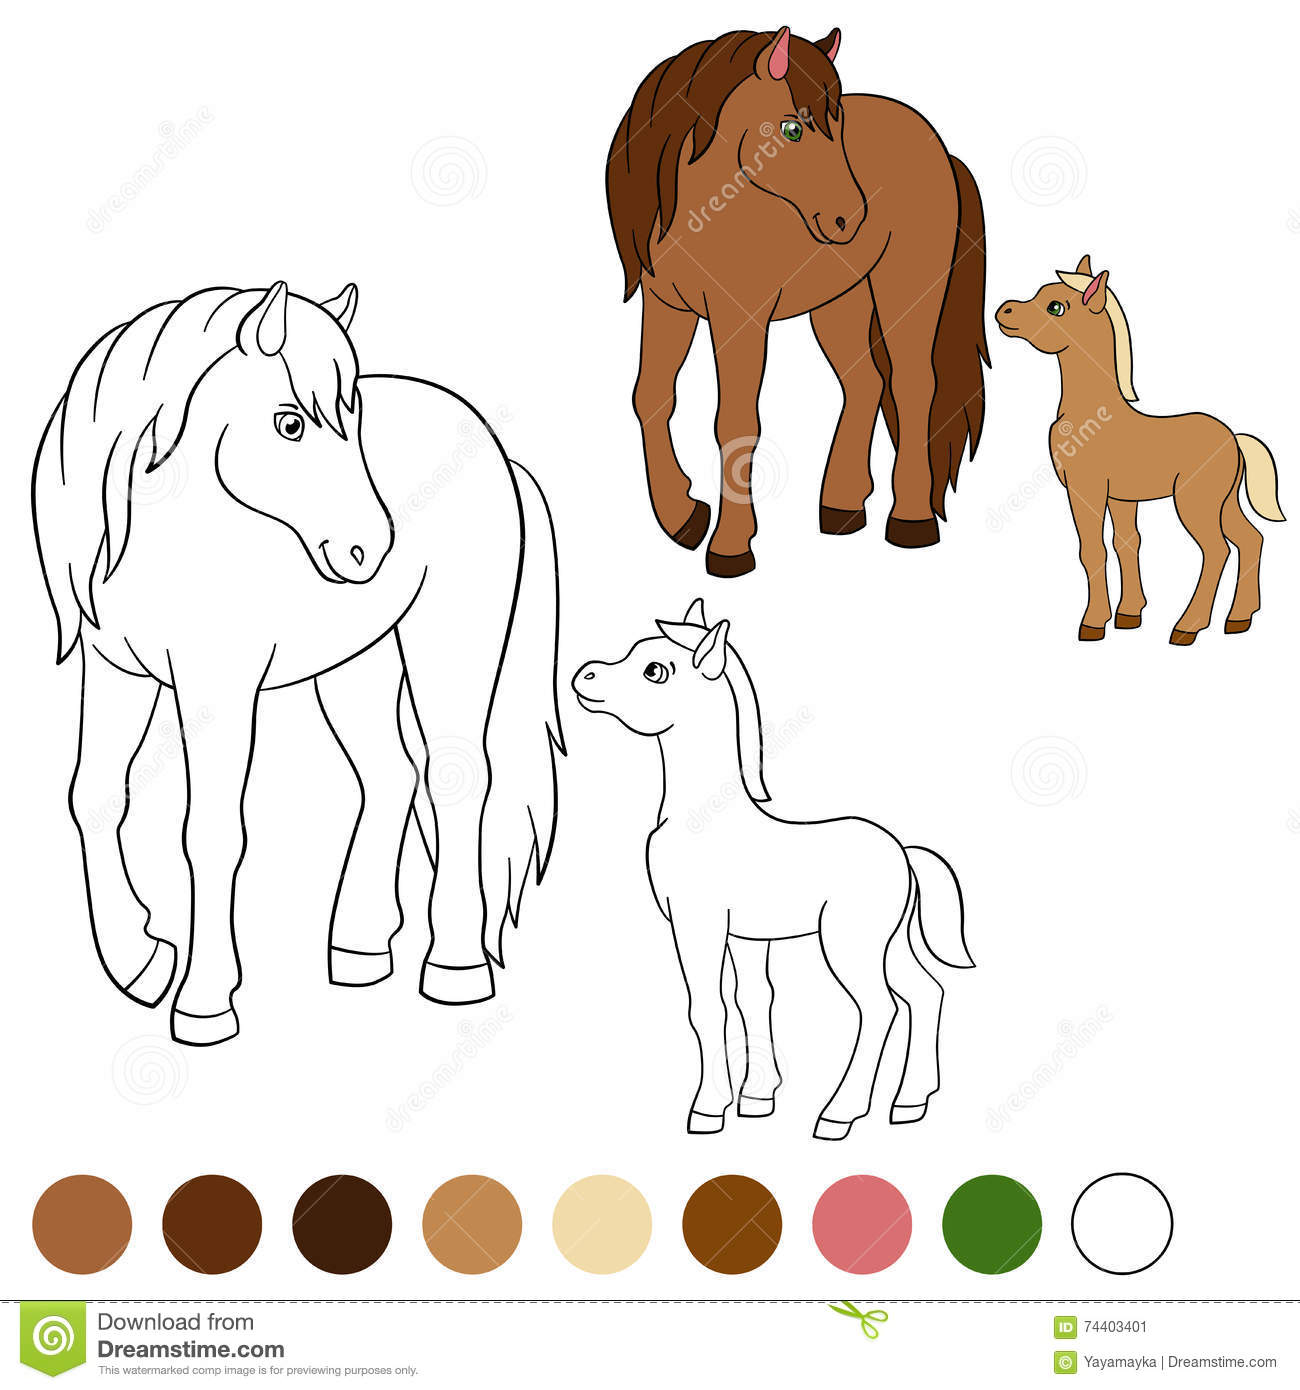 Horse and foal coloring page - Coloring Page Color Me Horse Mother Horse With Foal